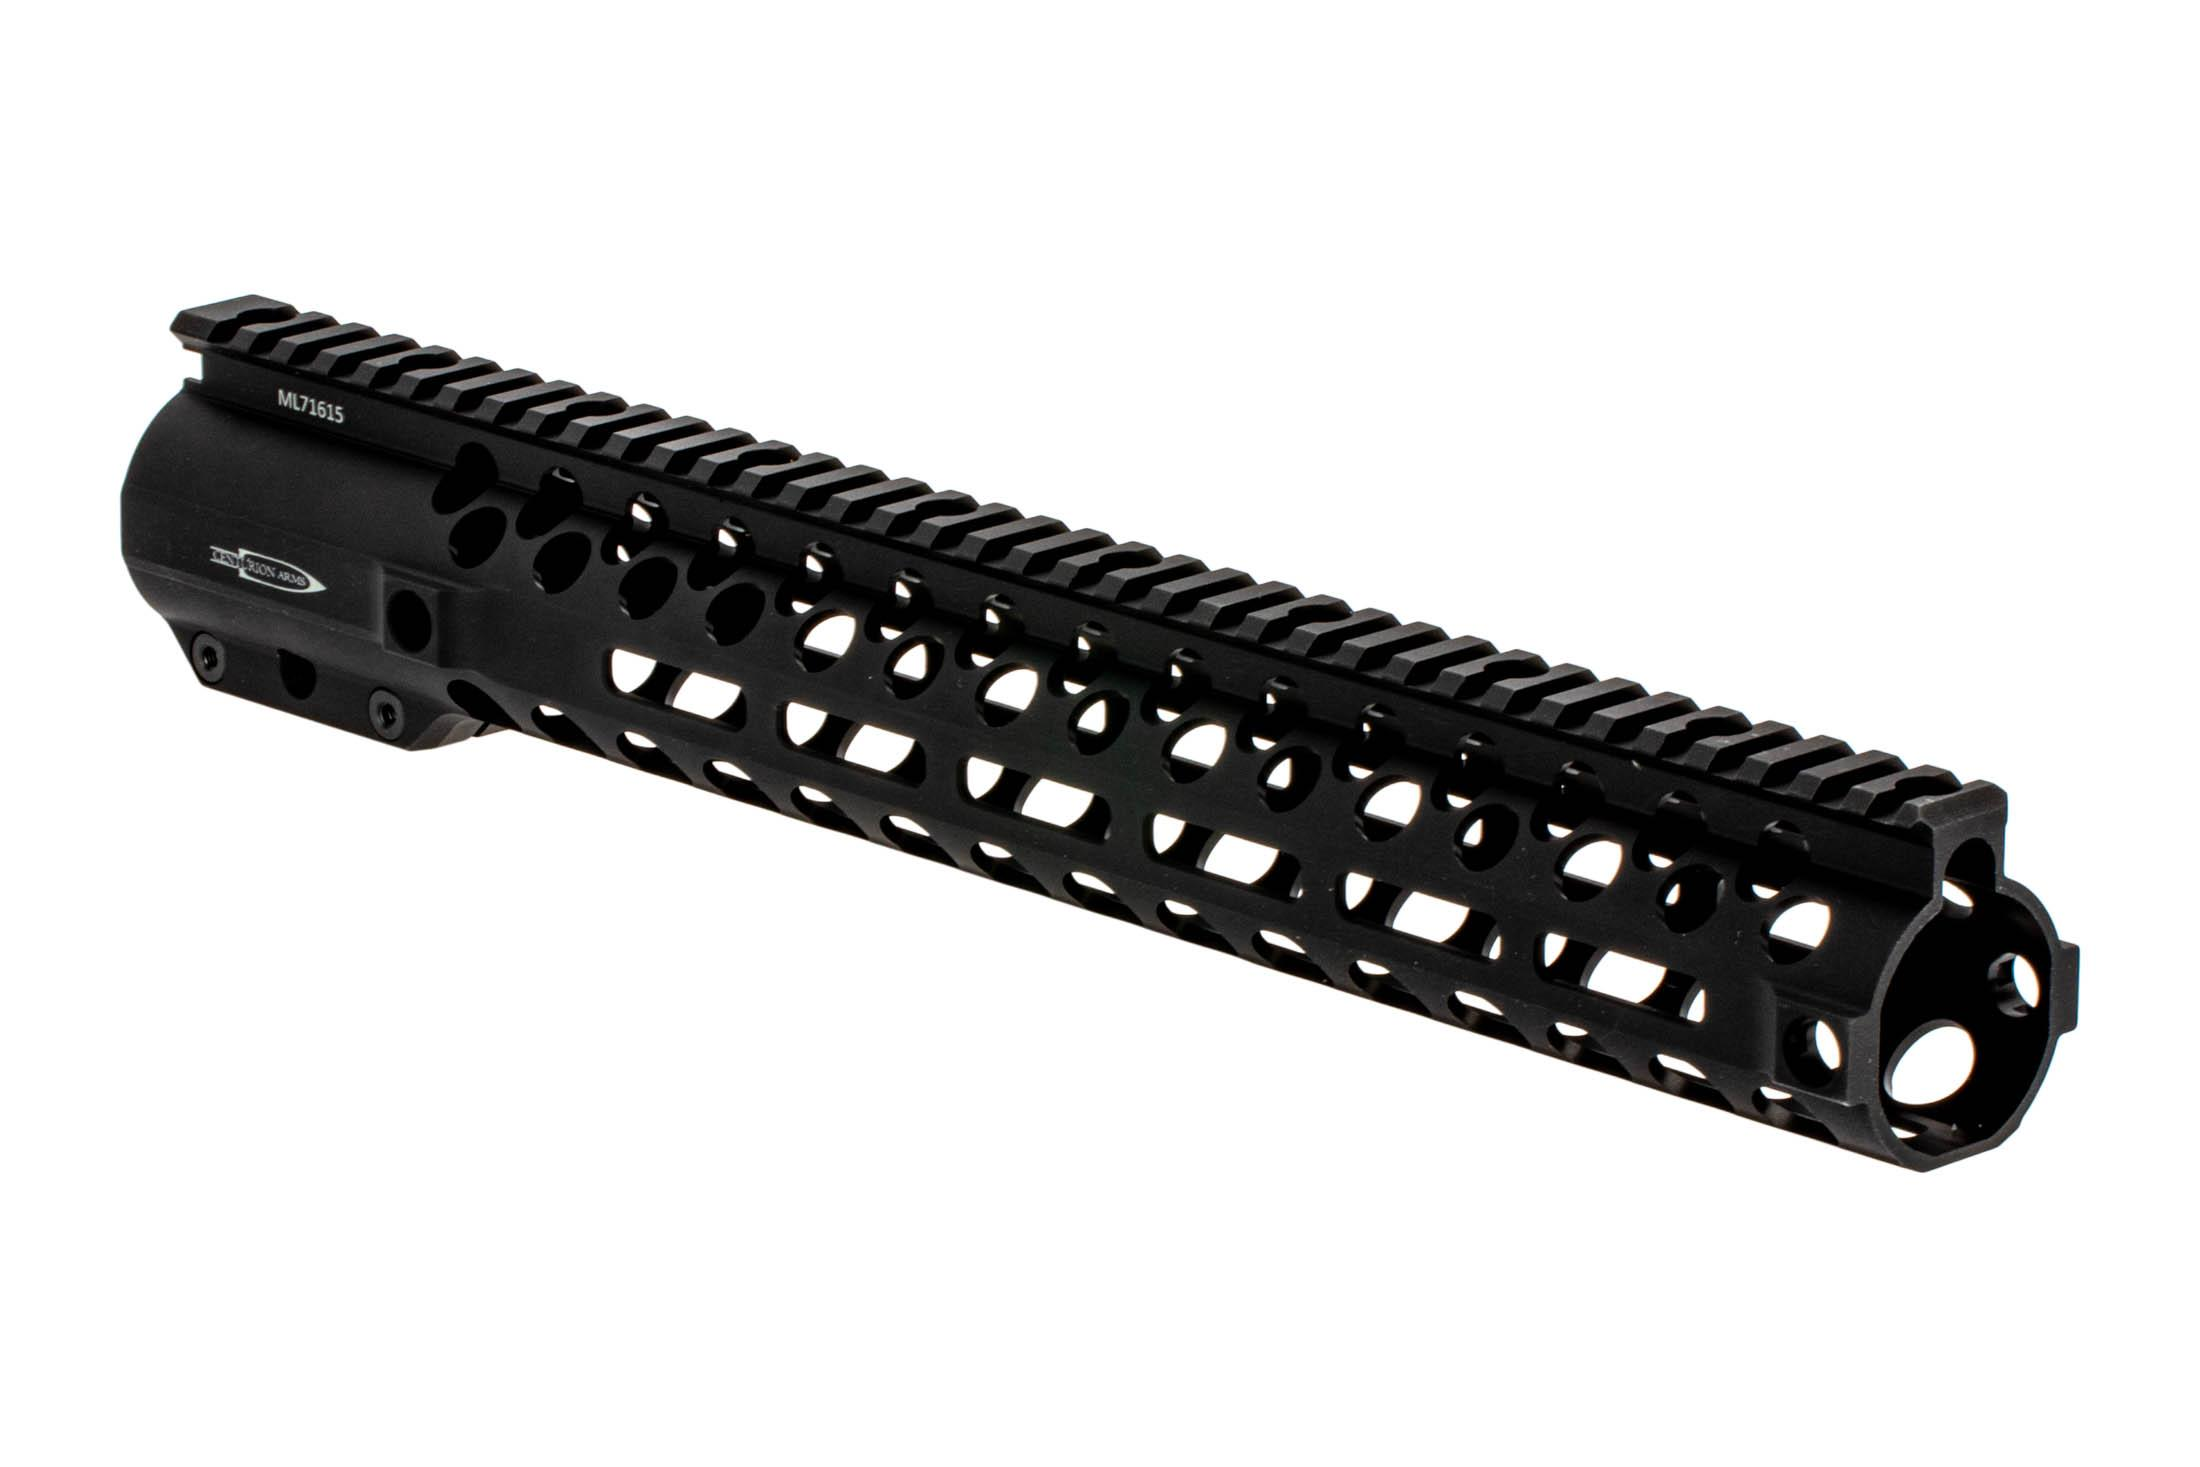 The Centurion Arms CMR AR308 Handguard 15 inch is machined from 6061-T6 aluminum